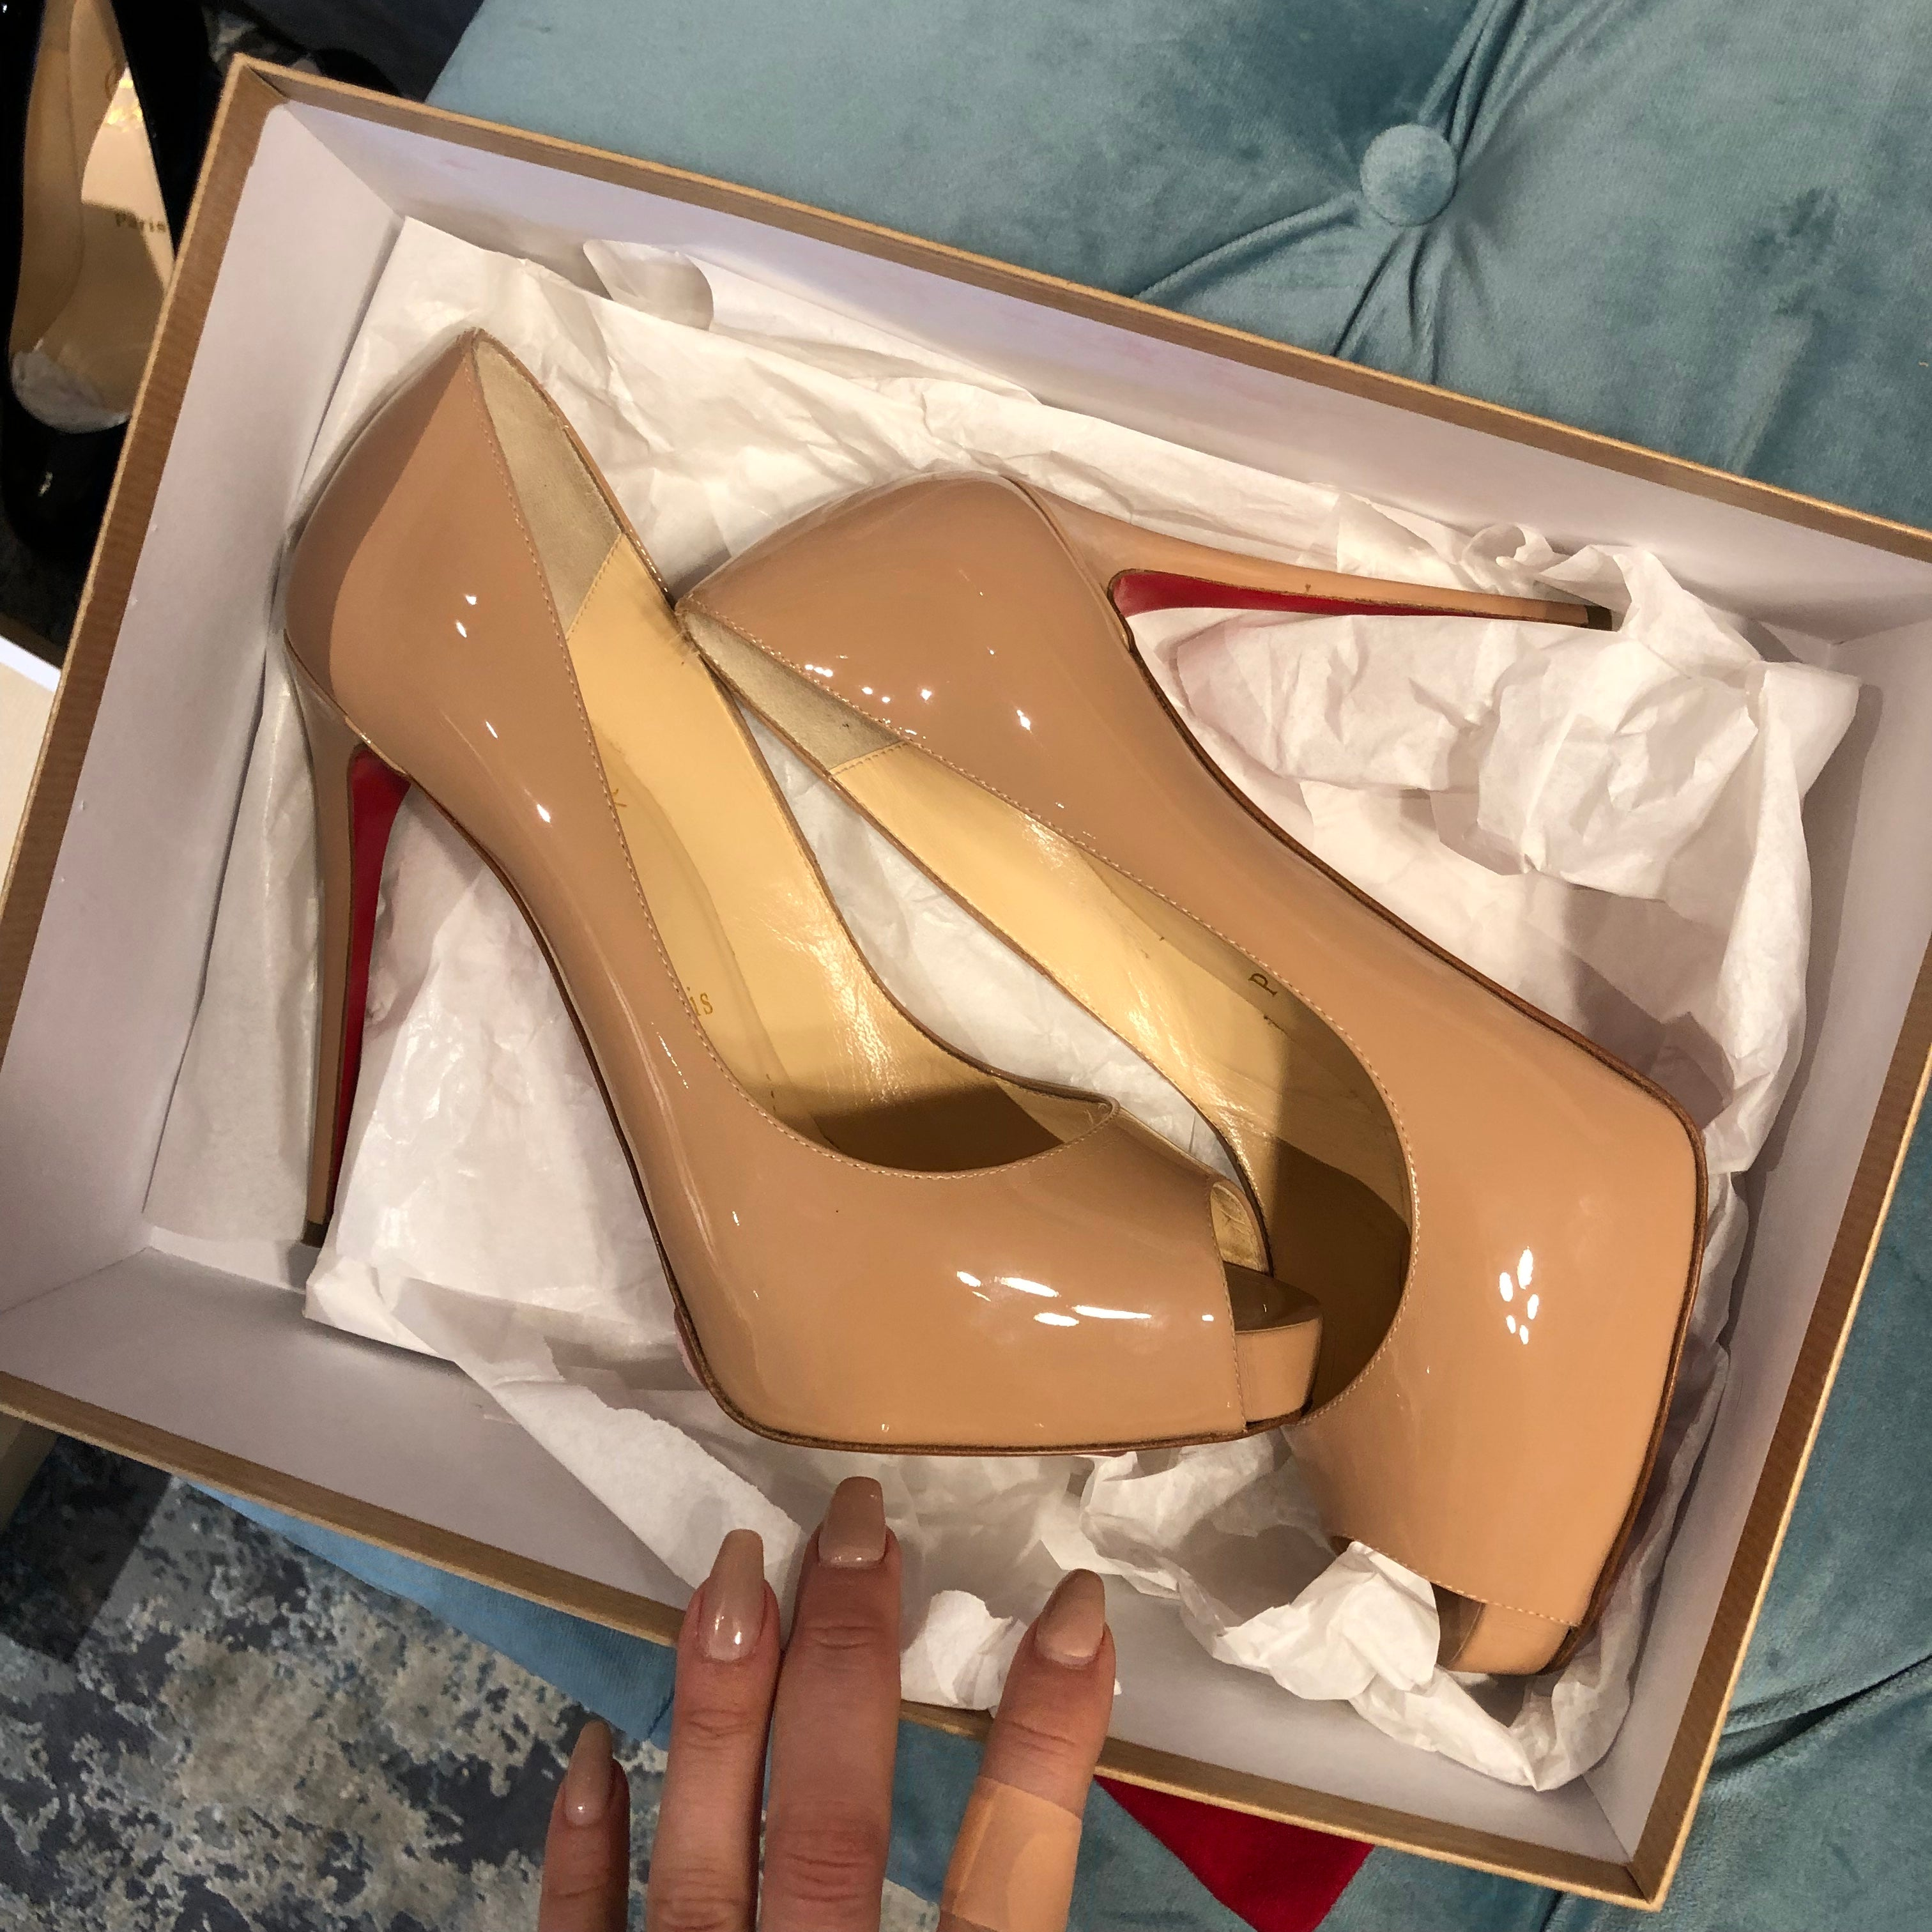 NEW PRODUCT - Authentic CHRISTIAN LOUBOUTIN - Nude Patent - 7.5 - Peep Toe Pump